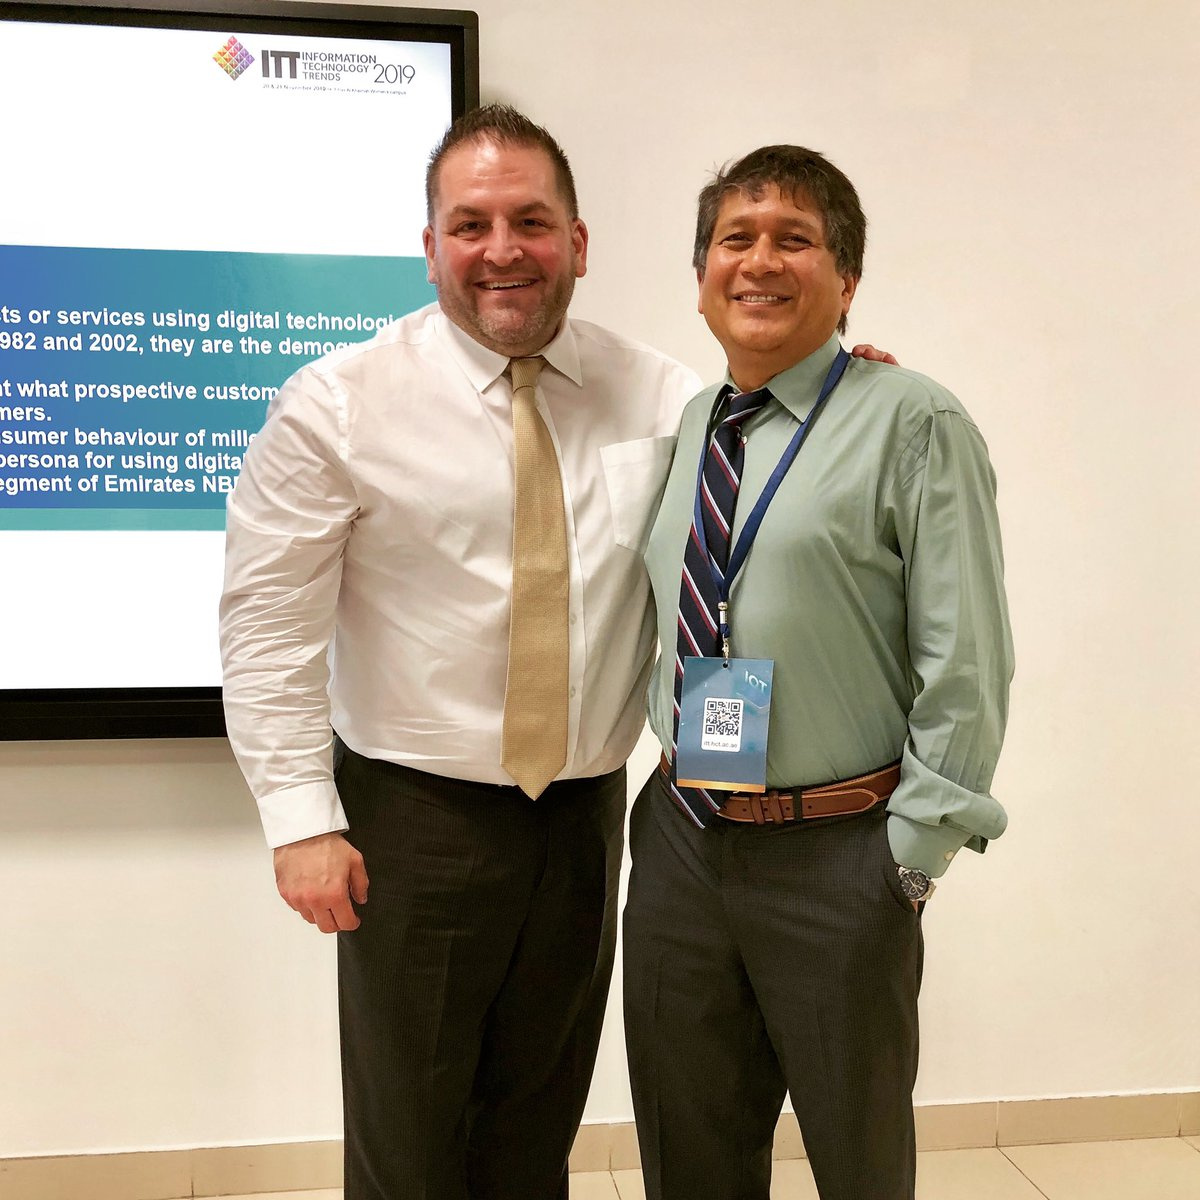 """RT @MatthewAGilbert: With my @BryanSchoolUNCG #PhD in #BusinessAdministration program professor, @nircj, after presenting my paper """"Improving Shared #Mobility with #Mobile #Technology: The #Case of @myekar in #Dubai"""" during #ITT2019 at @HCT_UAE's #RasAlK… https://t.co/FKb288ToNU"""